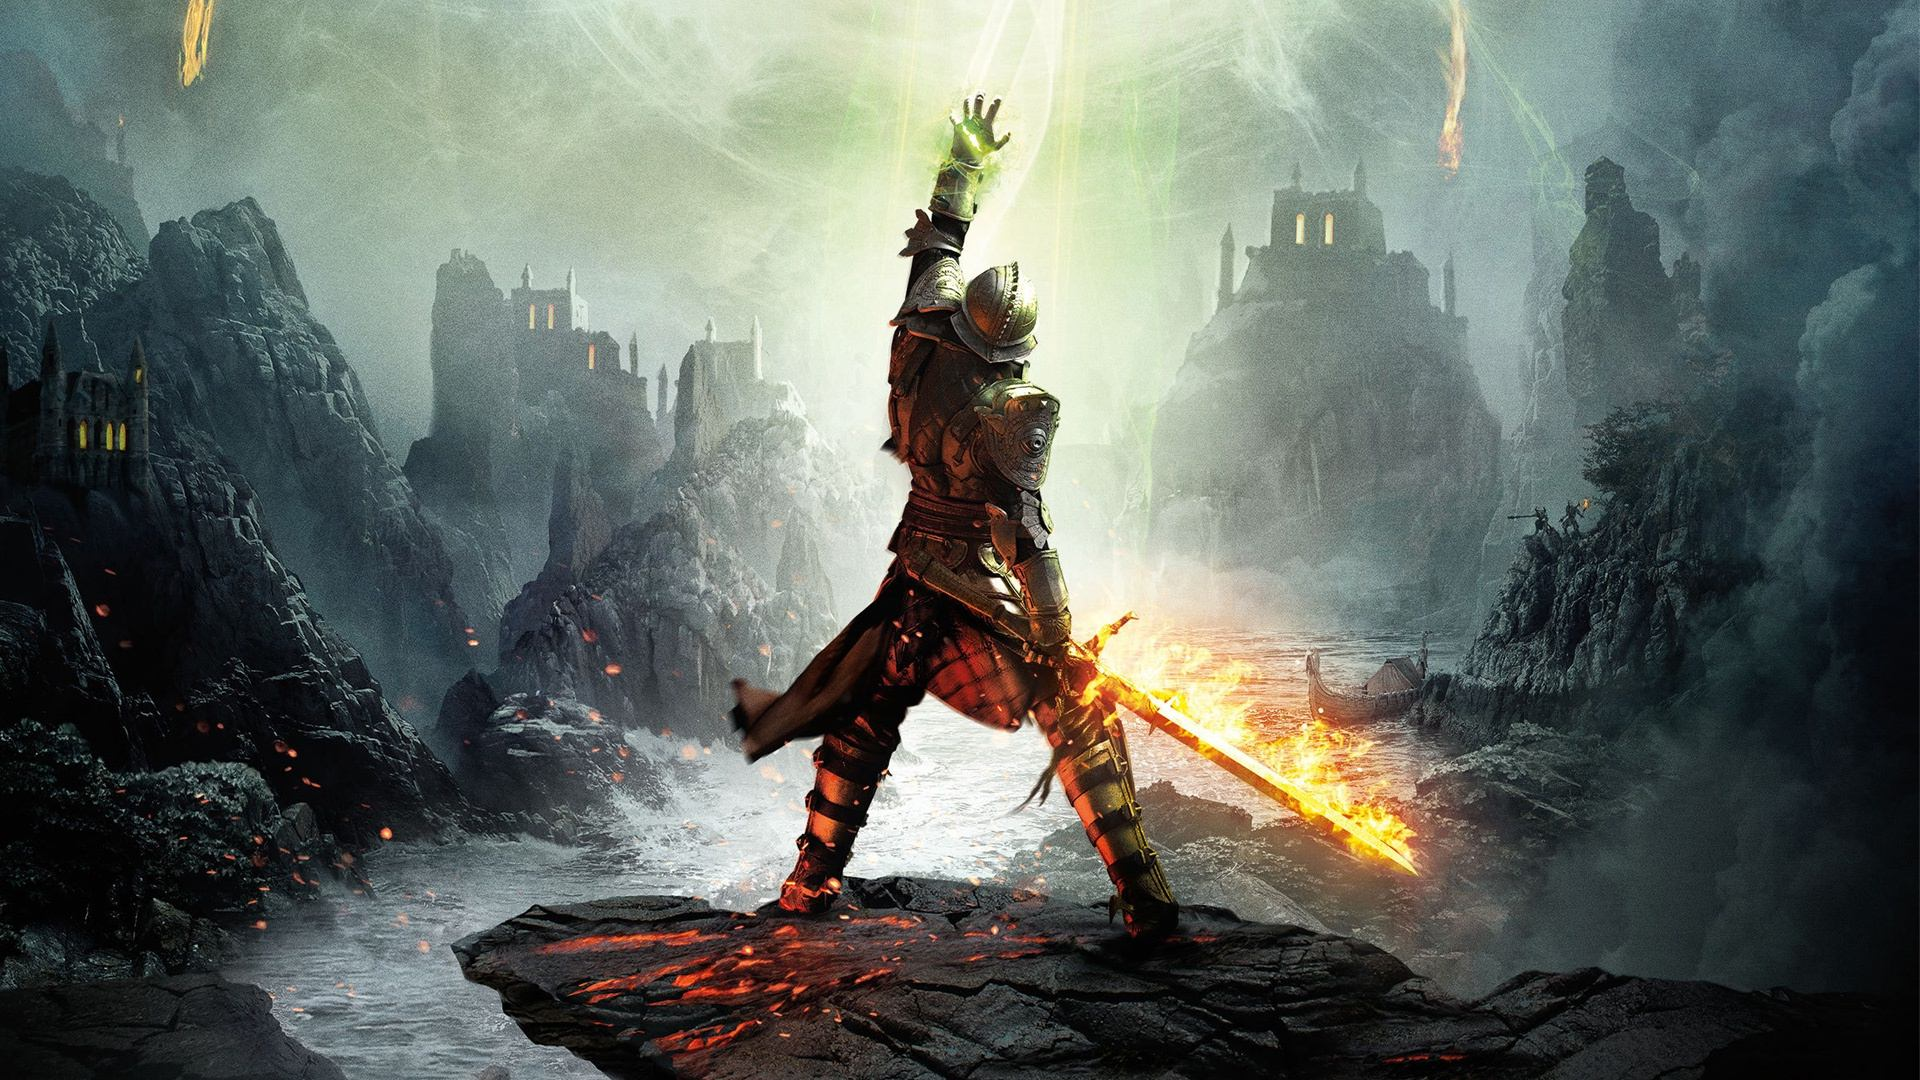 Dragon Age Inquisition Intuitive Controls mod overhauls the